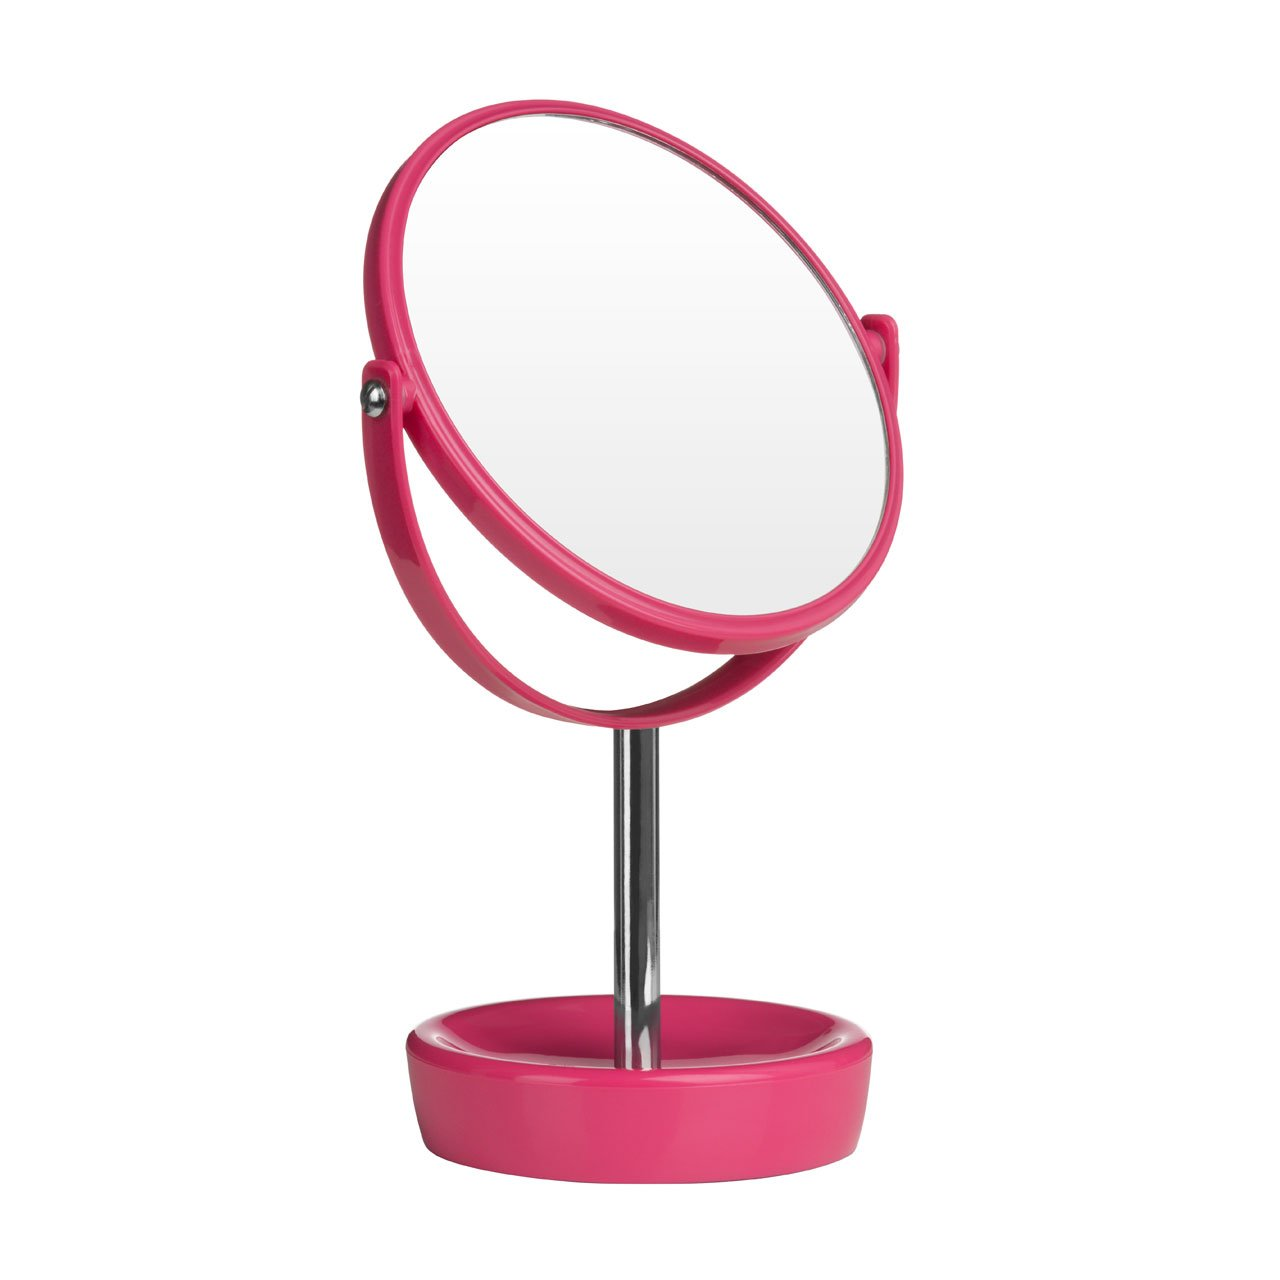 Hot Pink Colour Swivel Table Mirror Made of Plastic Chrome With Magnifying Option